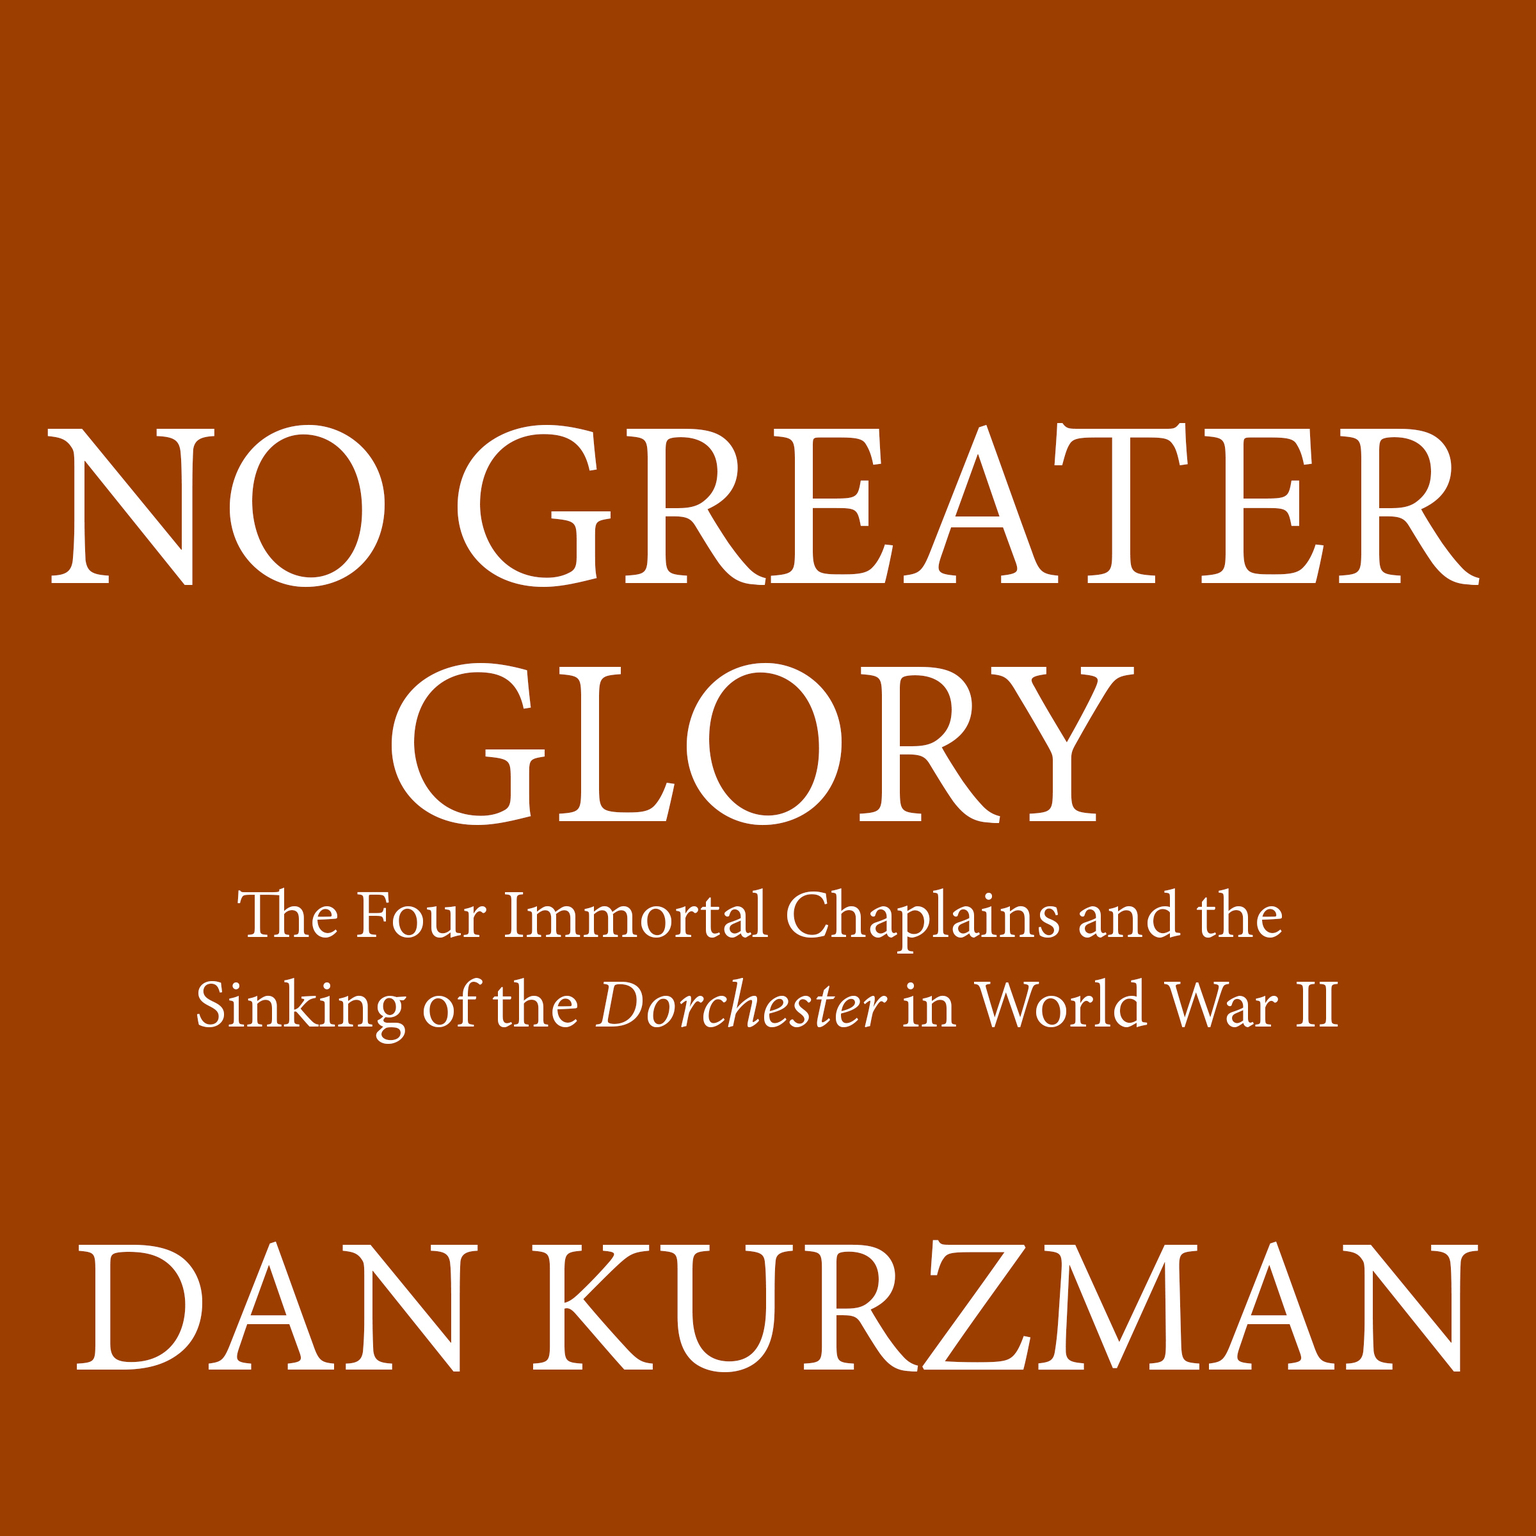 No Greater Glory: The Four Immortal Chaplains and the Sinking of the Dorchester in World War II Audiobook, by Dan Kurzman